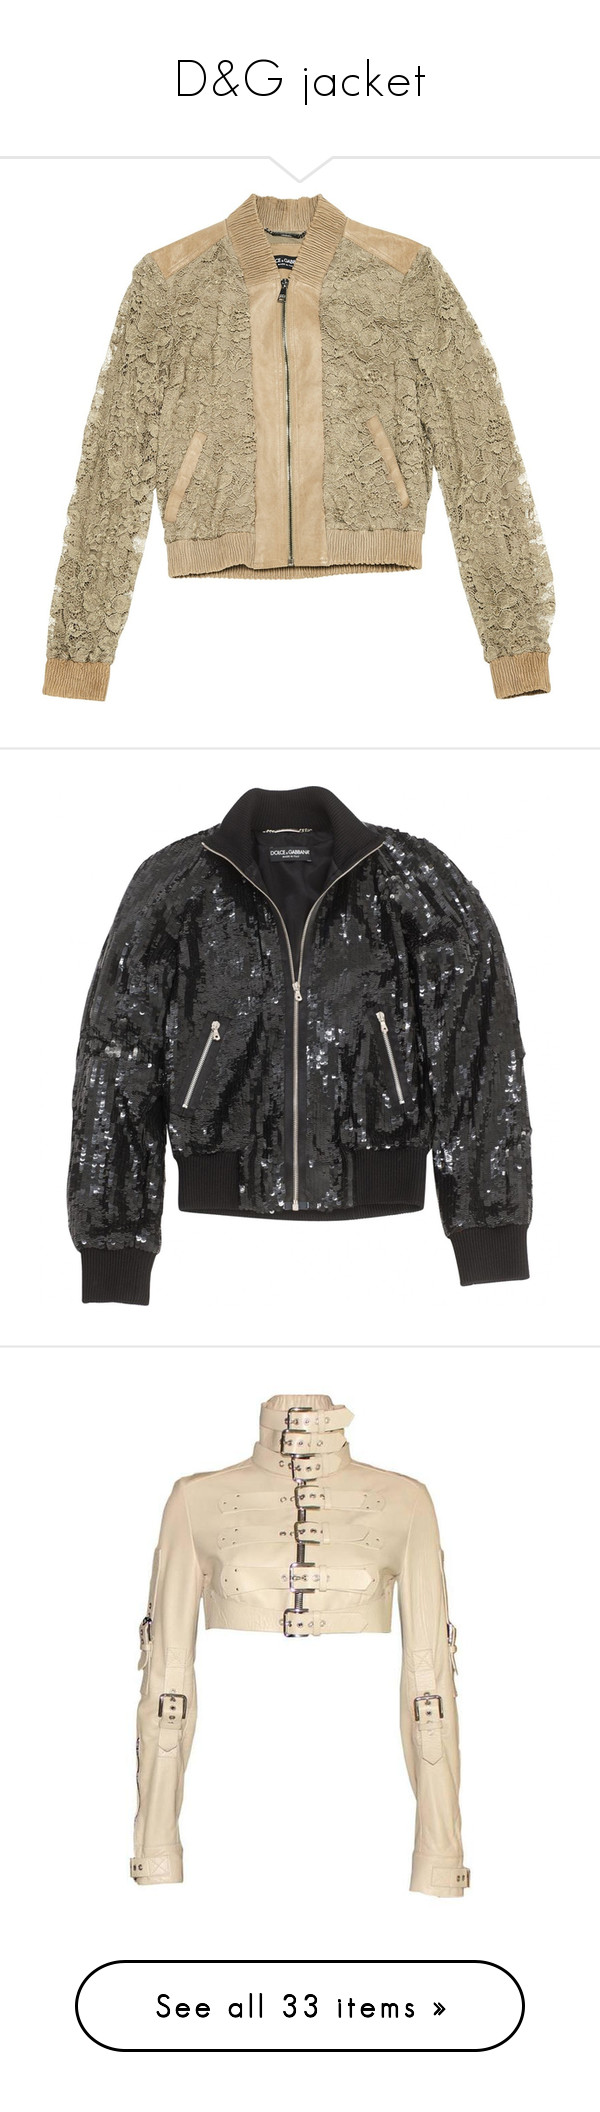 """D&G jacket"" by alinachipchikova liked on Polyvore"